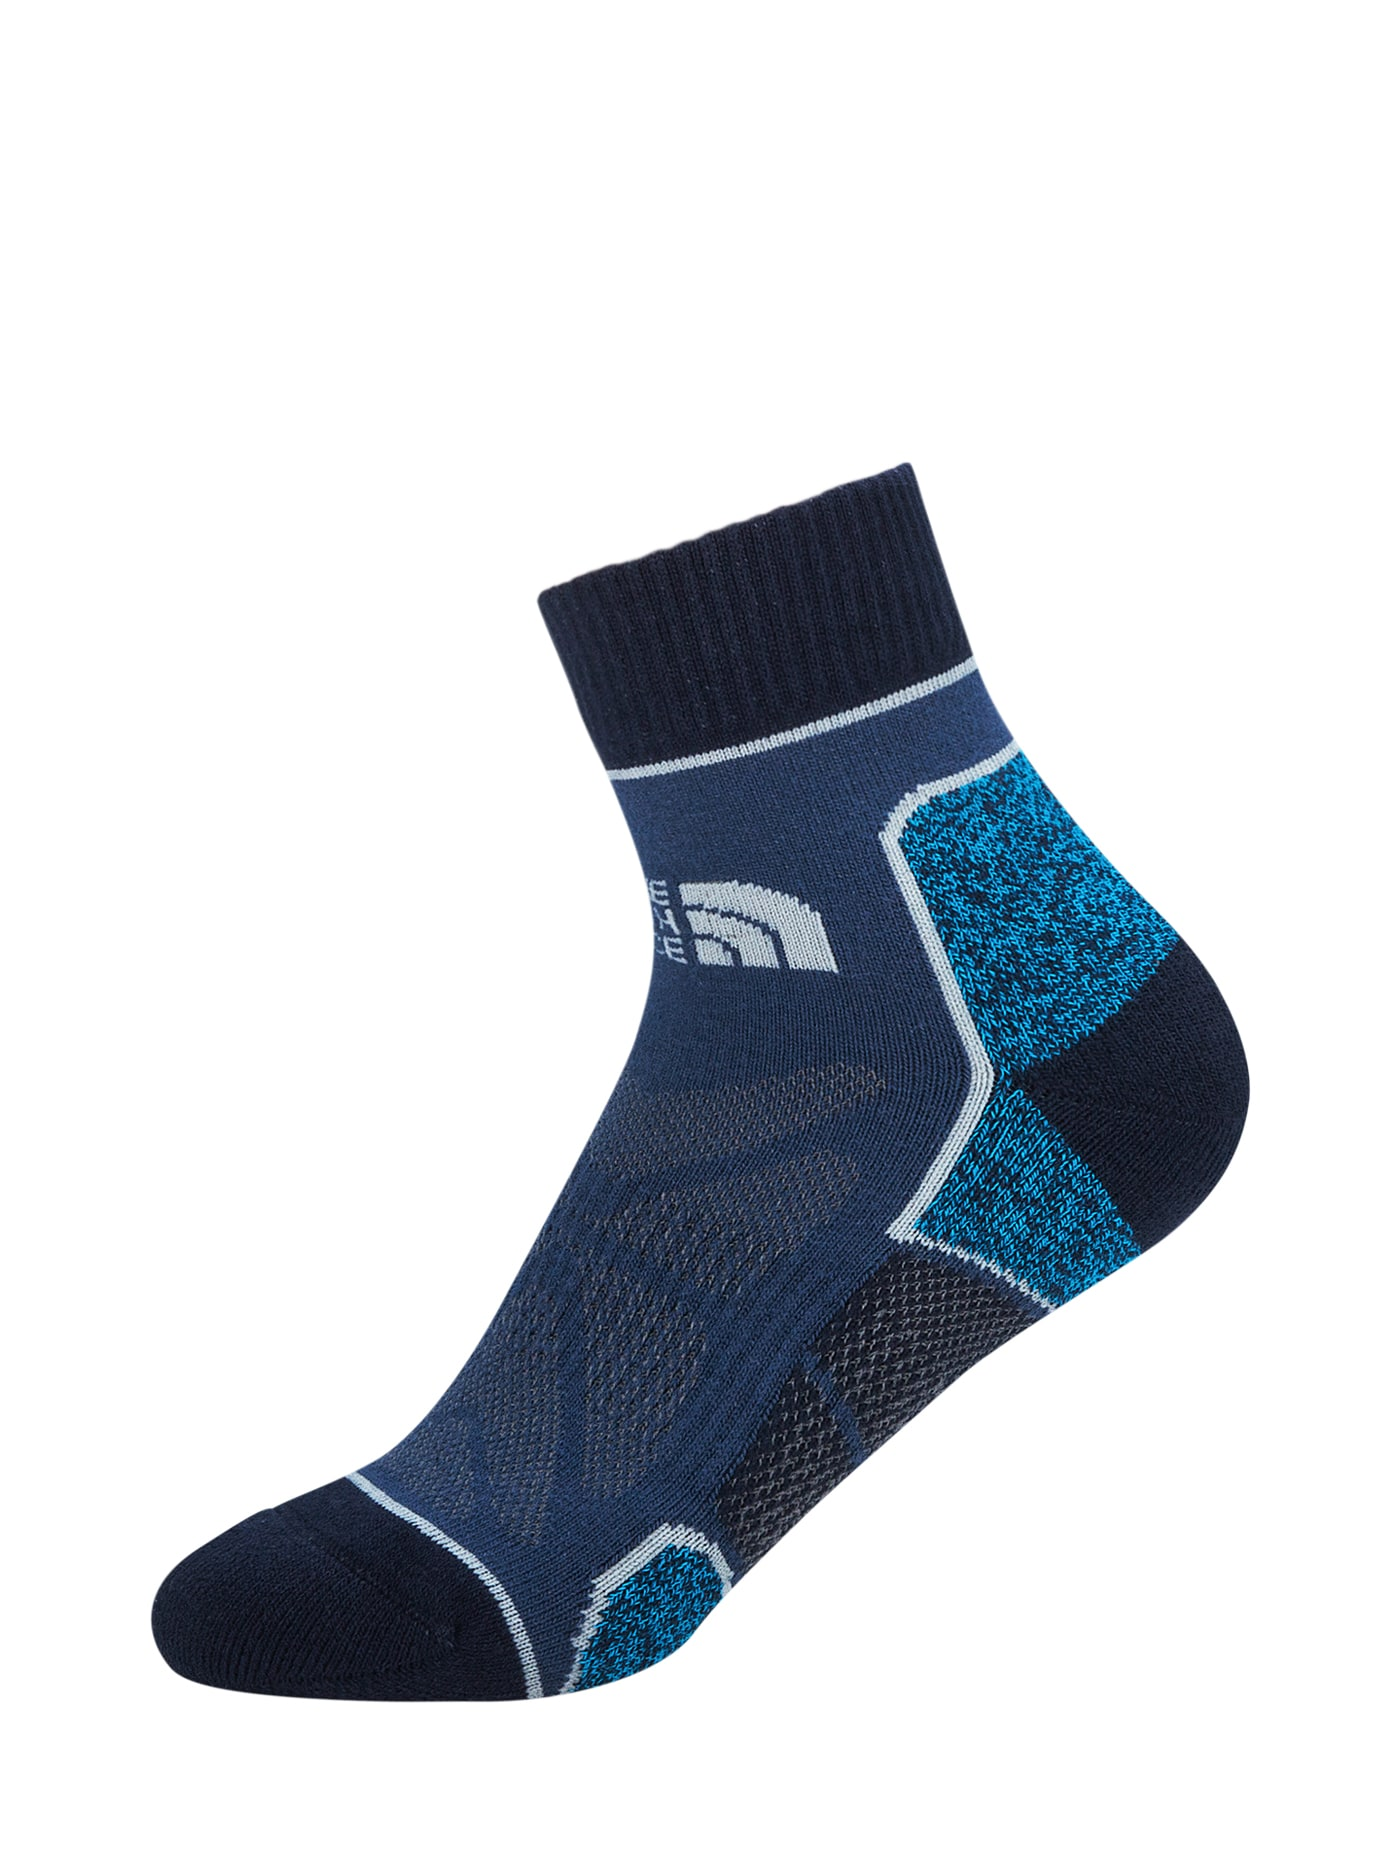 b0163fe83 THE NORTH FACE Unisex Hiking Socks NF0A2XY5TZM00 Size-   Central Online